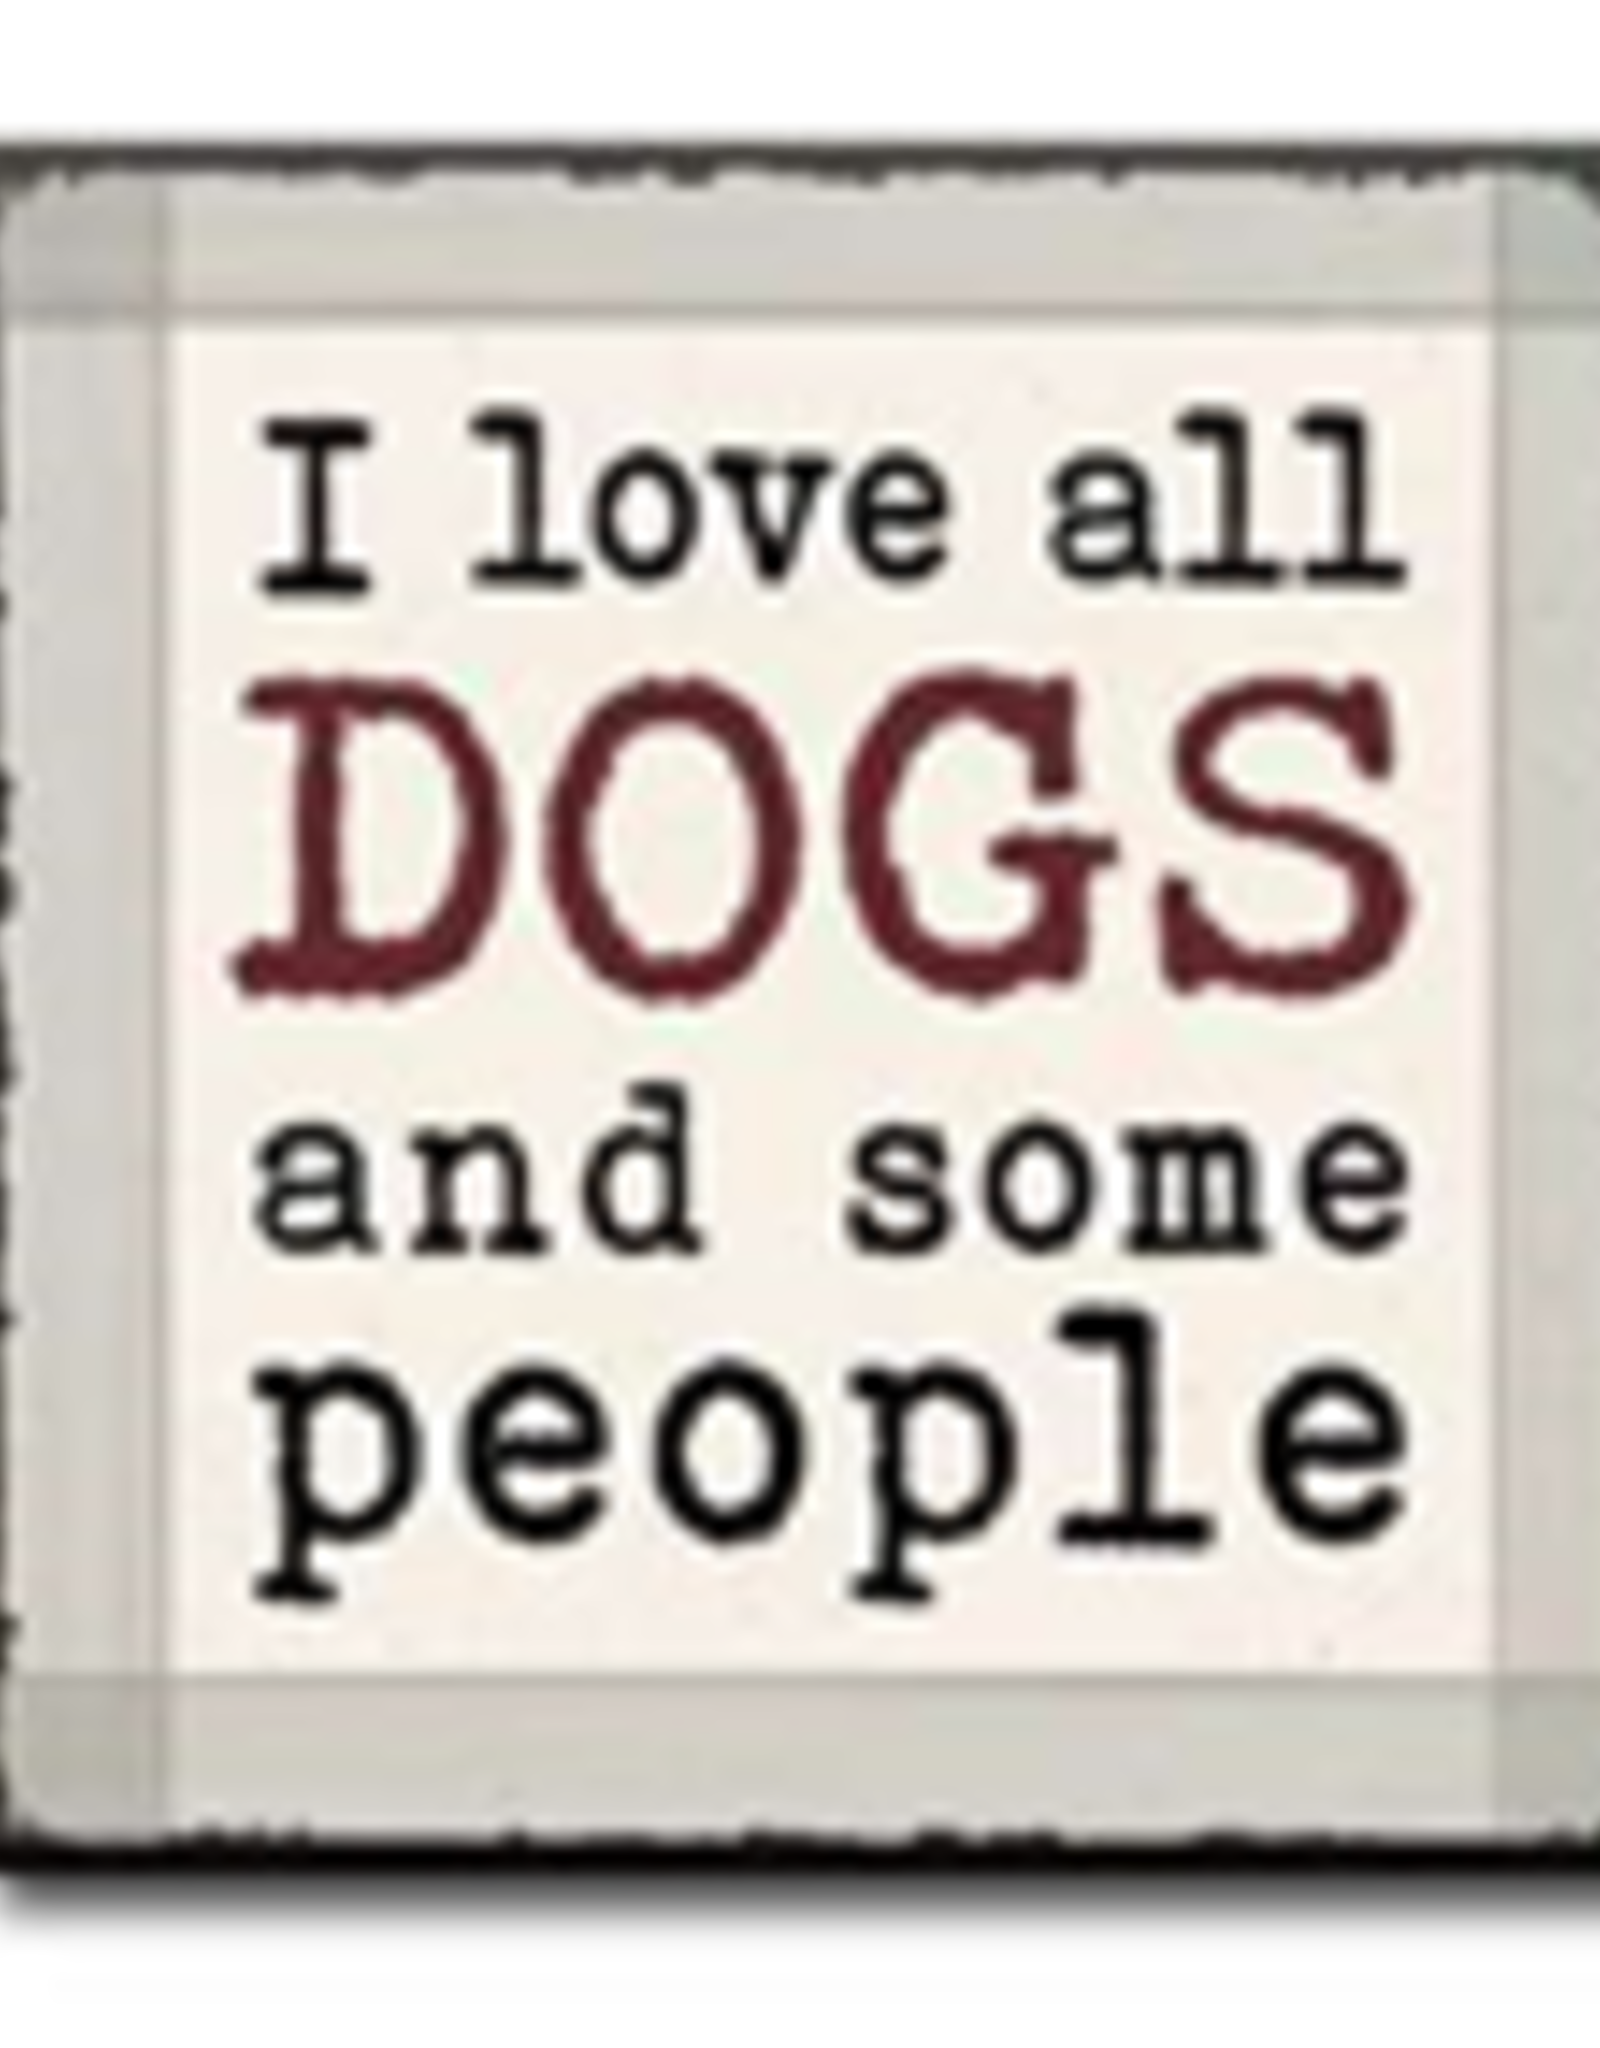 I Love All Dogs and Some People 4x4